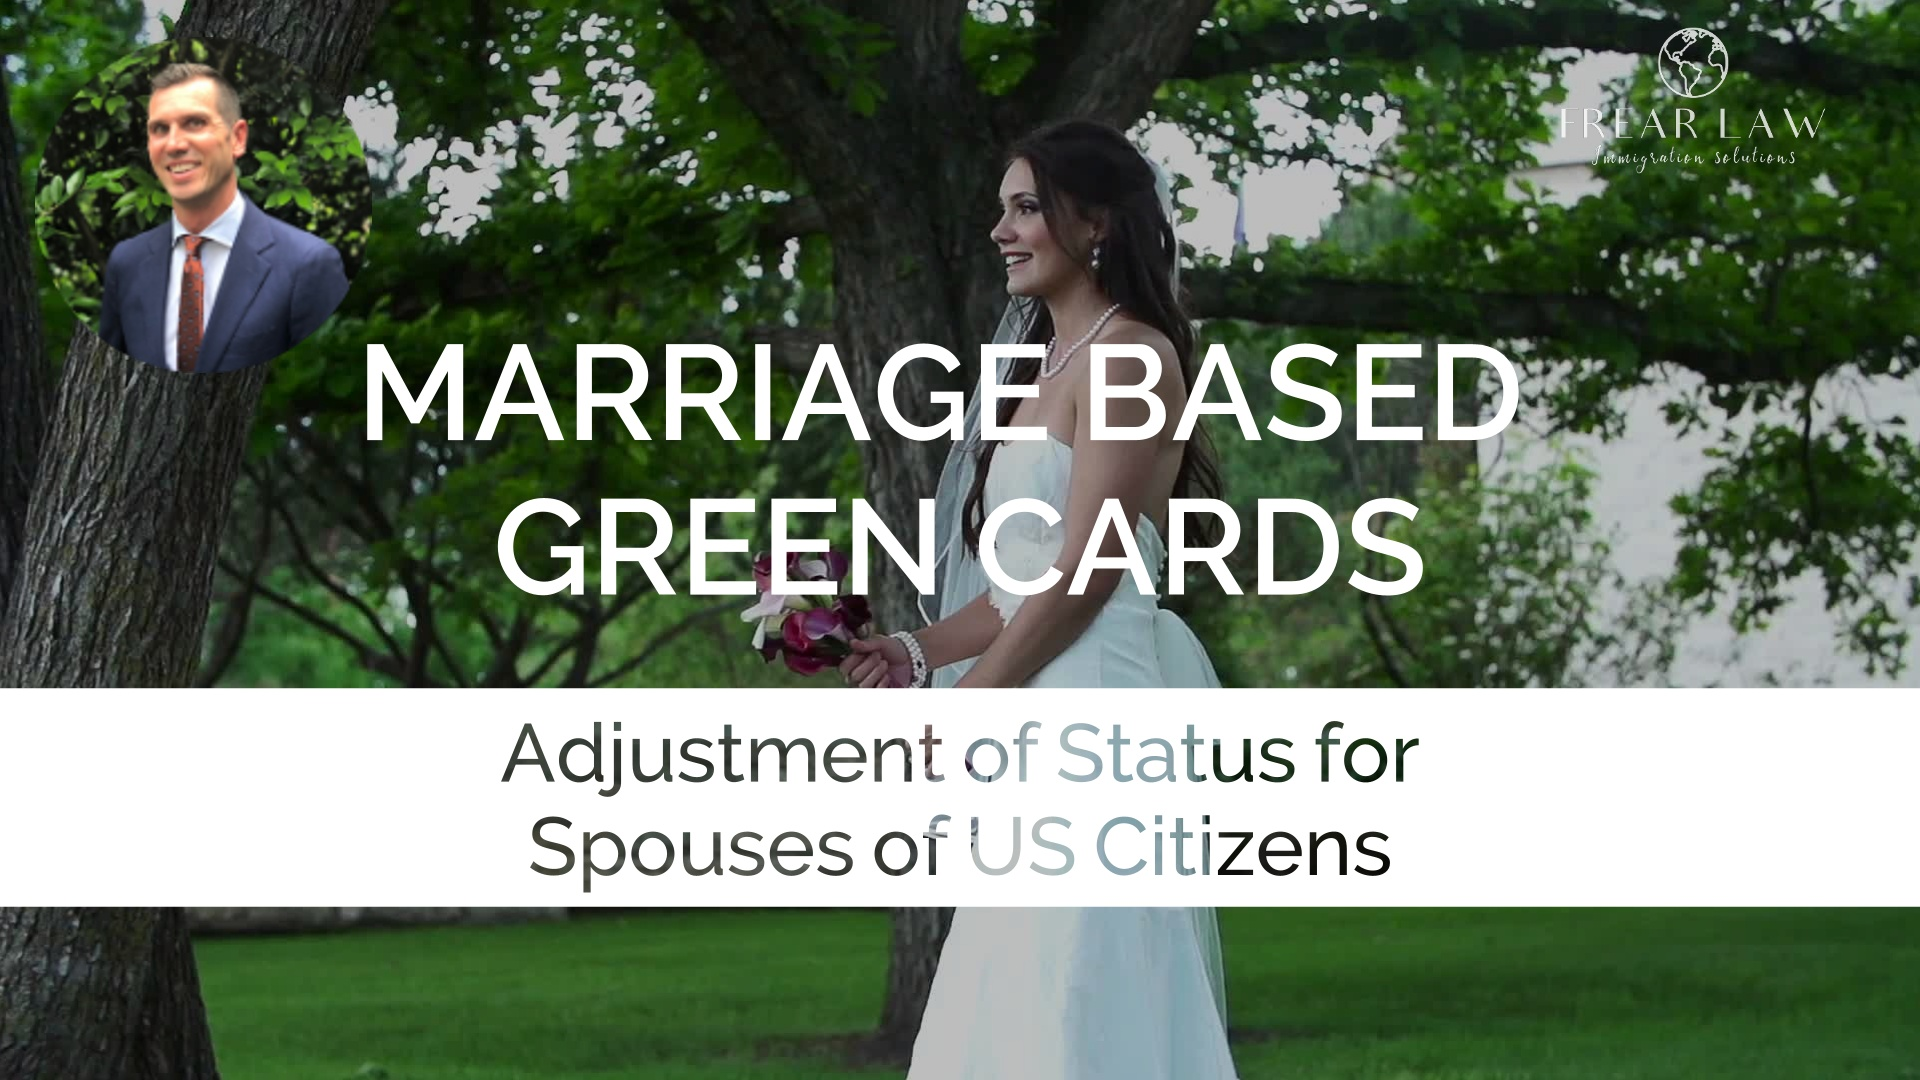 Marriage Based Green Cards for US Citizen Spouses